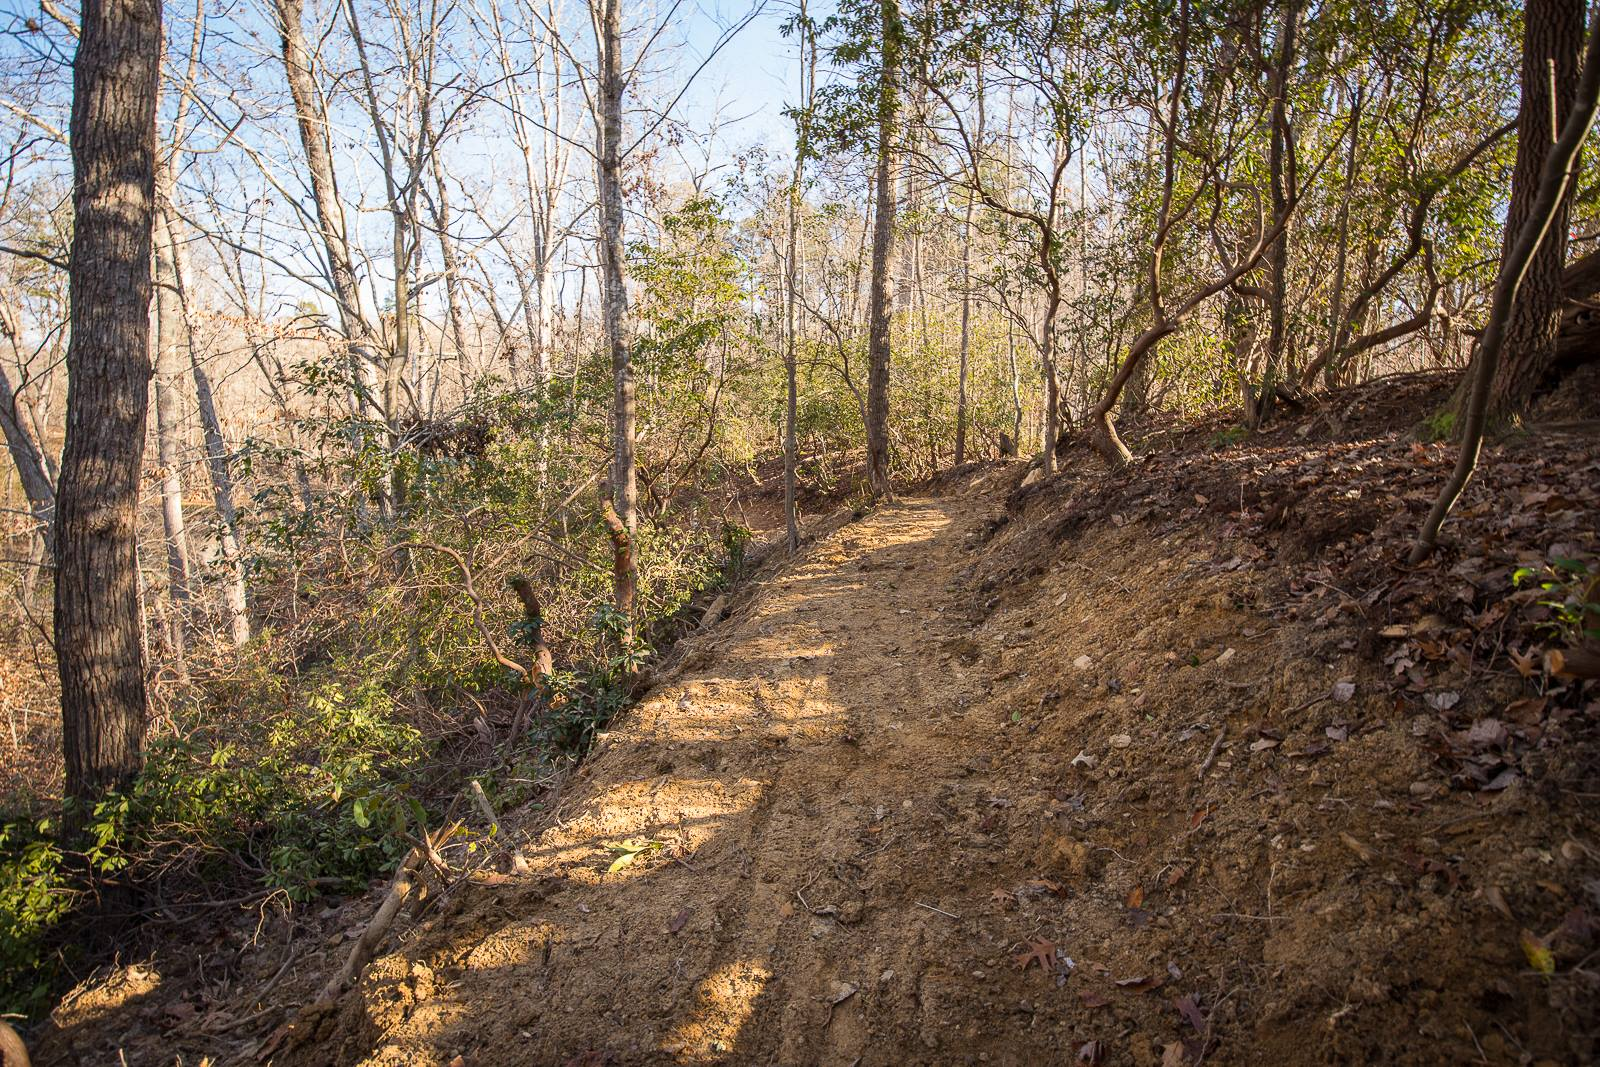 5 Mountain Bike Trails to Try in Gainesville   Official Georgia Tourism & Travel Website   Explore Georgia.org